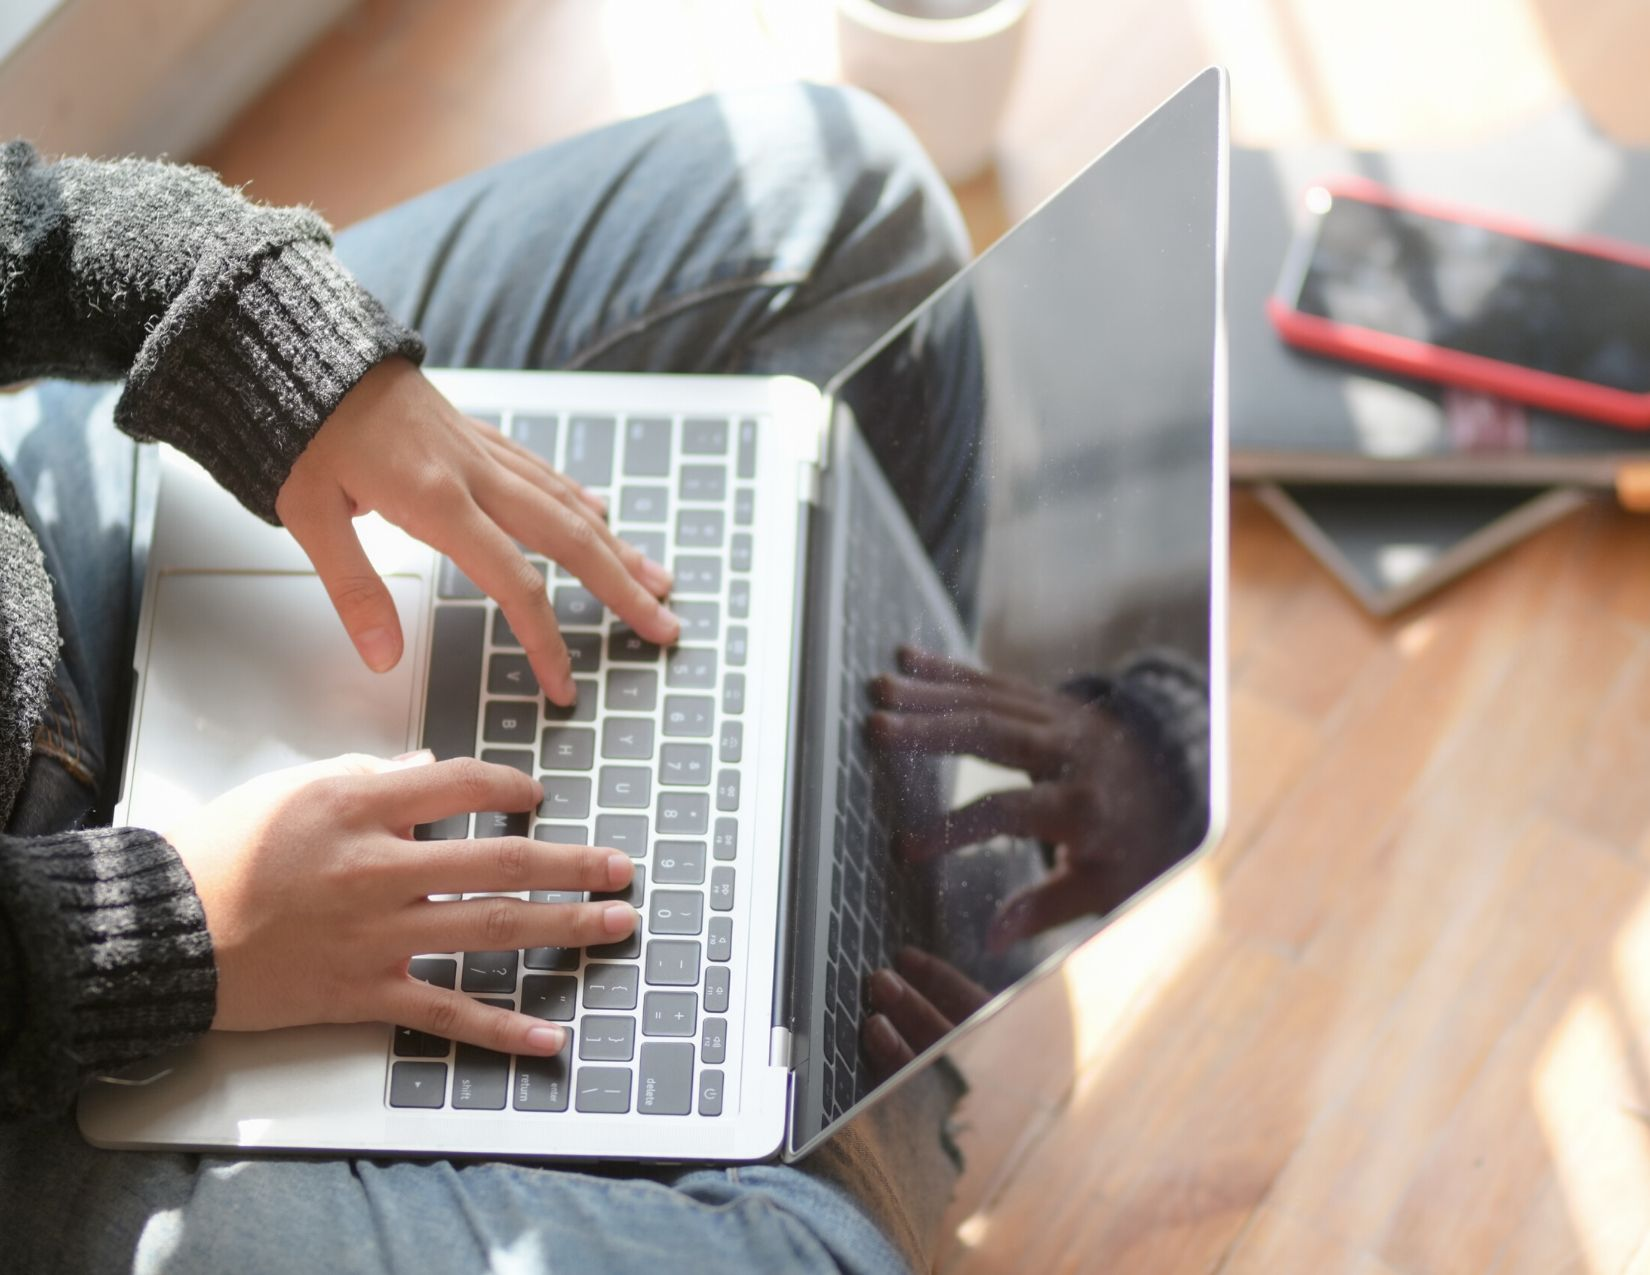 Work from home productivity tips | Pacific Workplaces